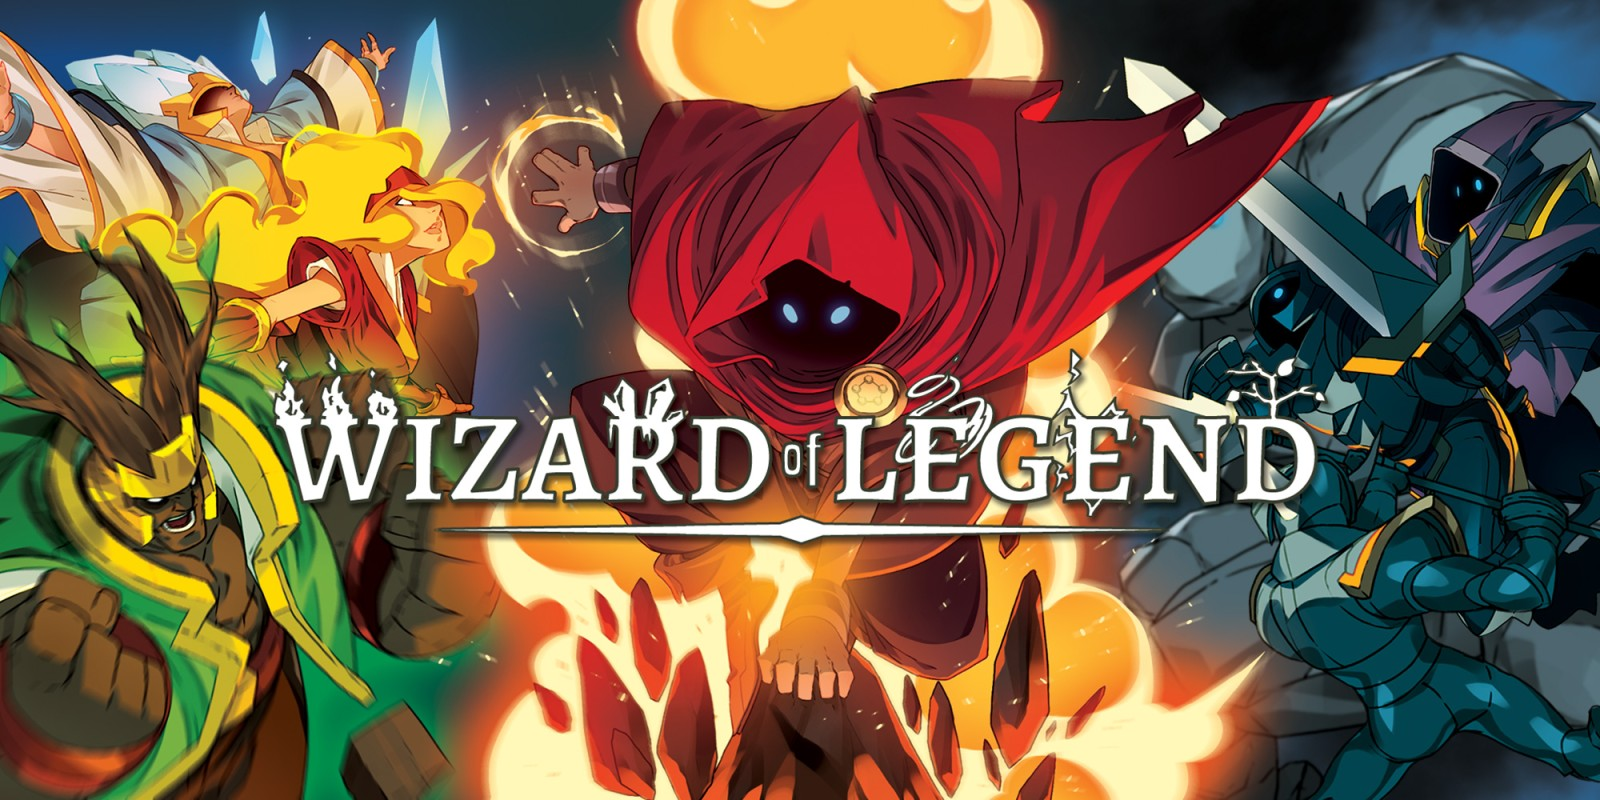 Wizard of Legend Steam Key (Region Free)